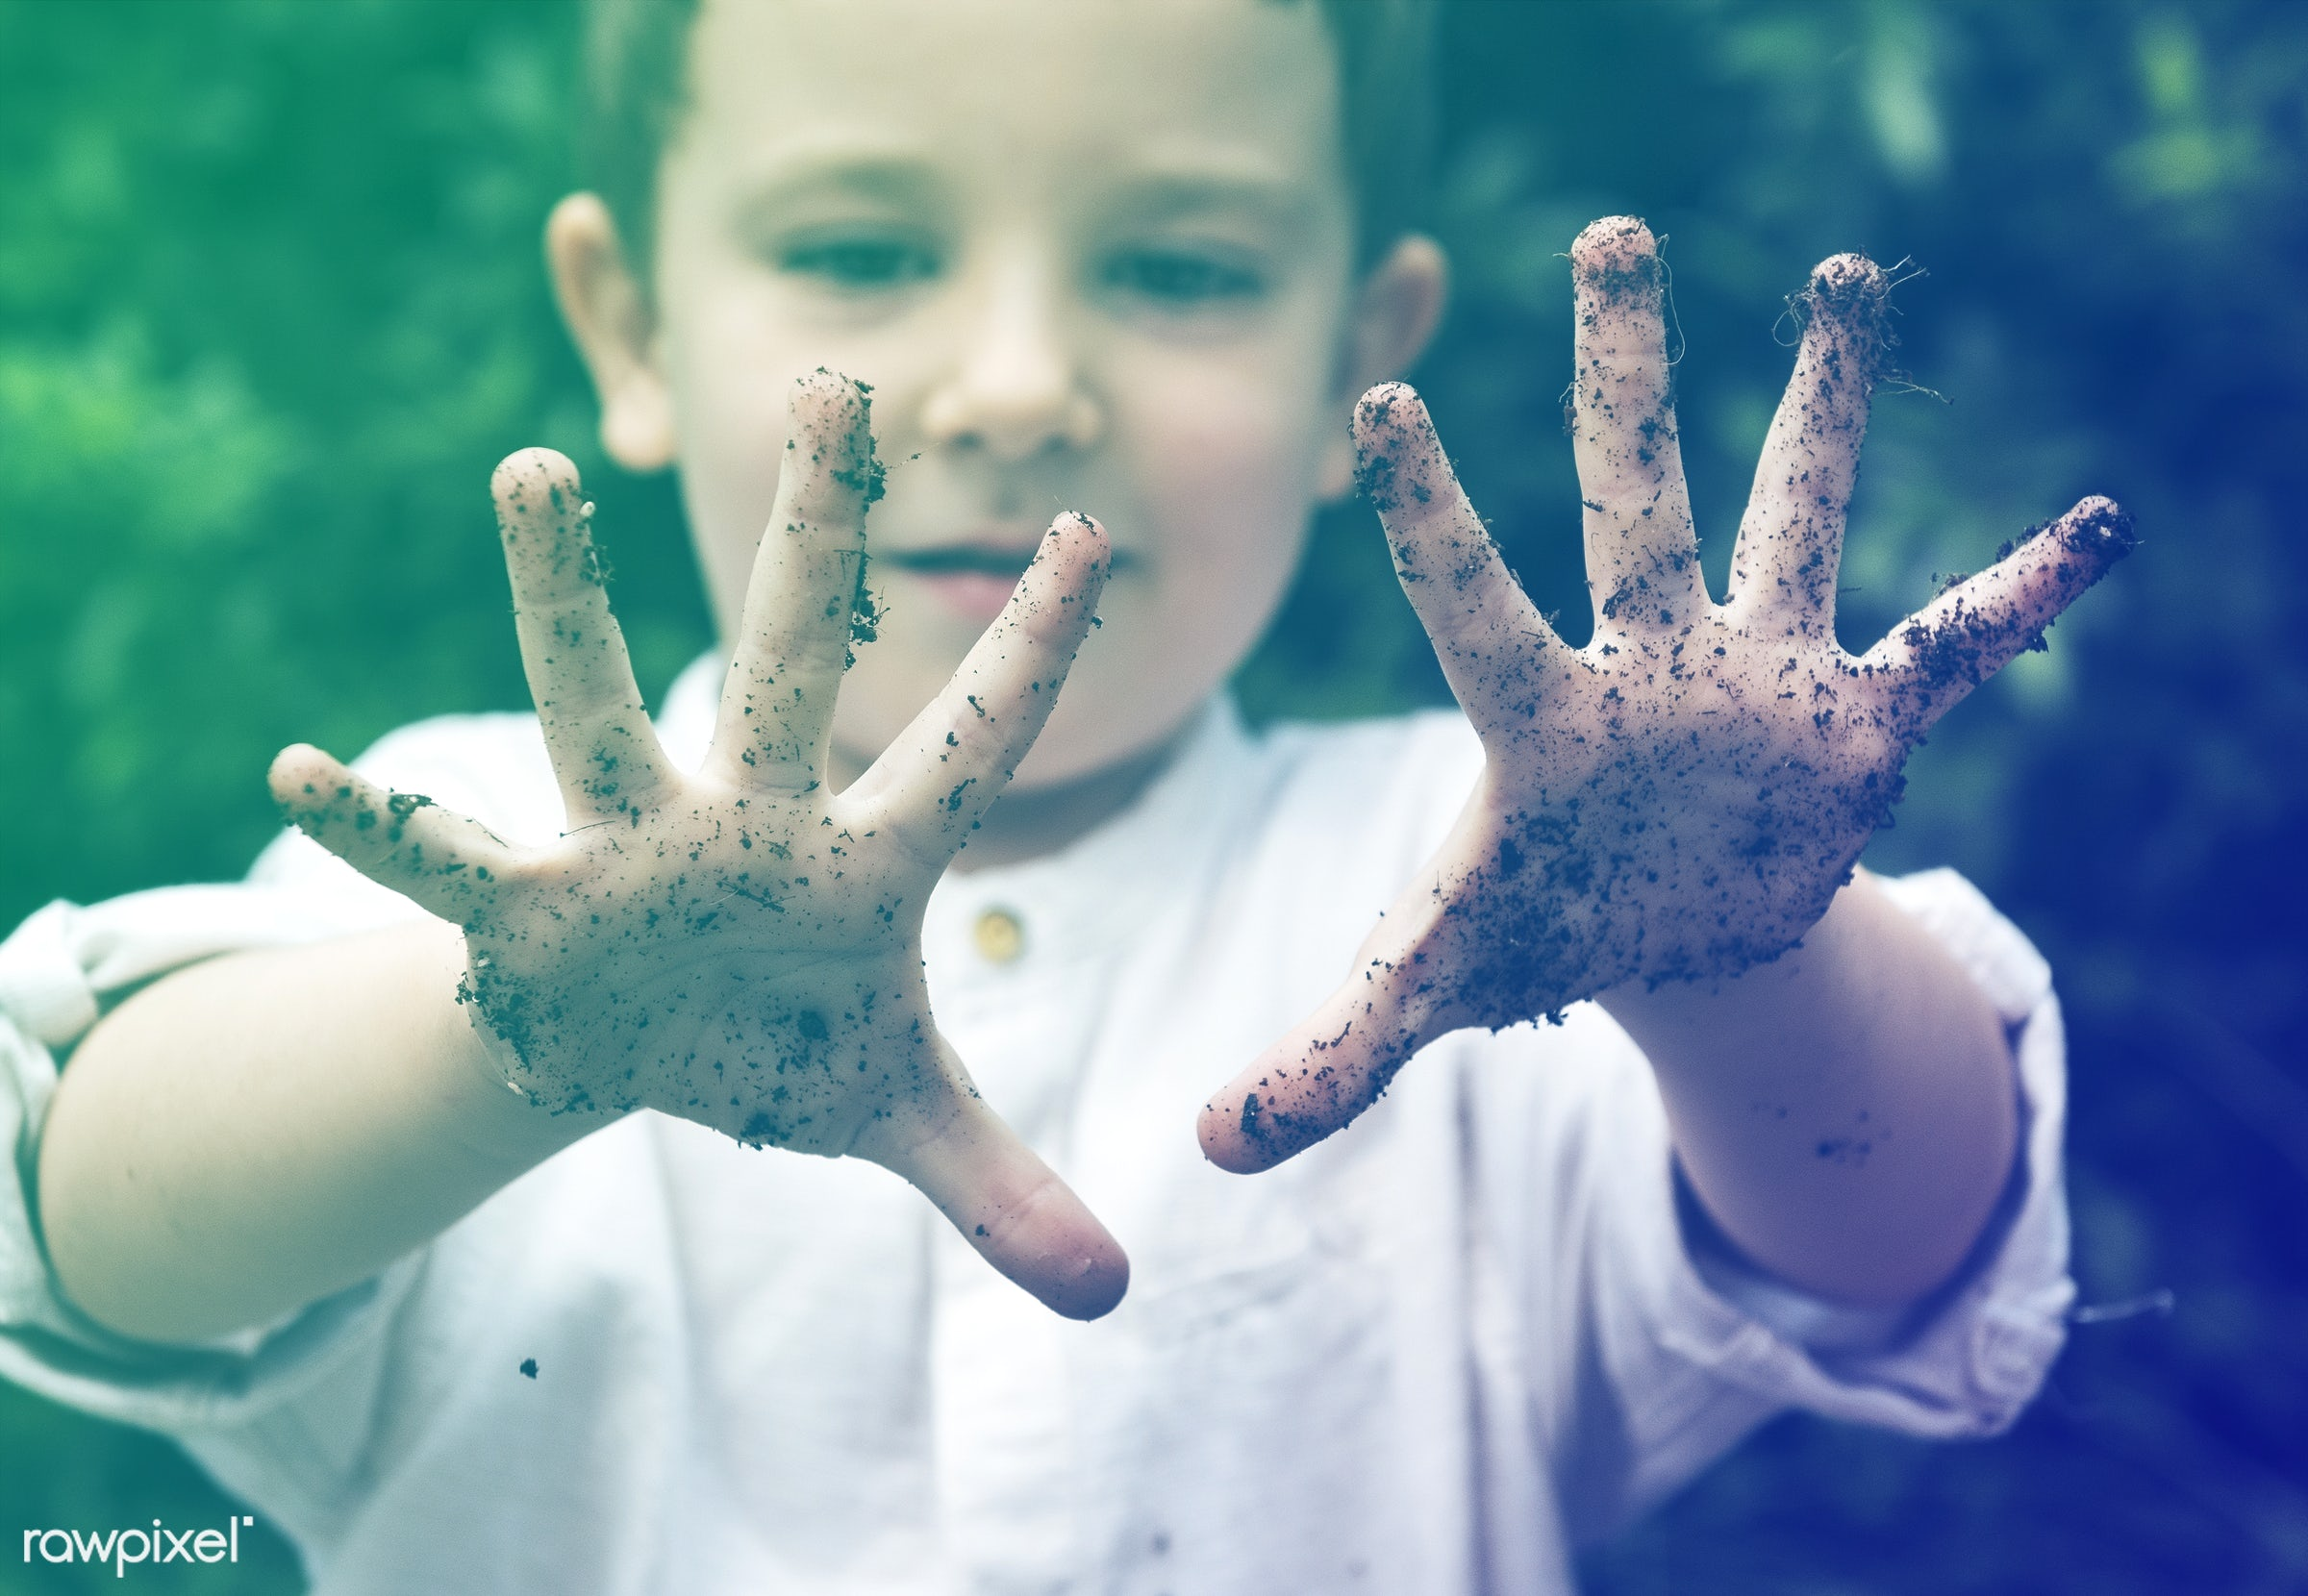 playful, little, children, cute, positivity, kid, child, cheeky, lomo, happy, pottery, dirty, smile, positive, dirt, smiling...